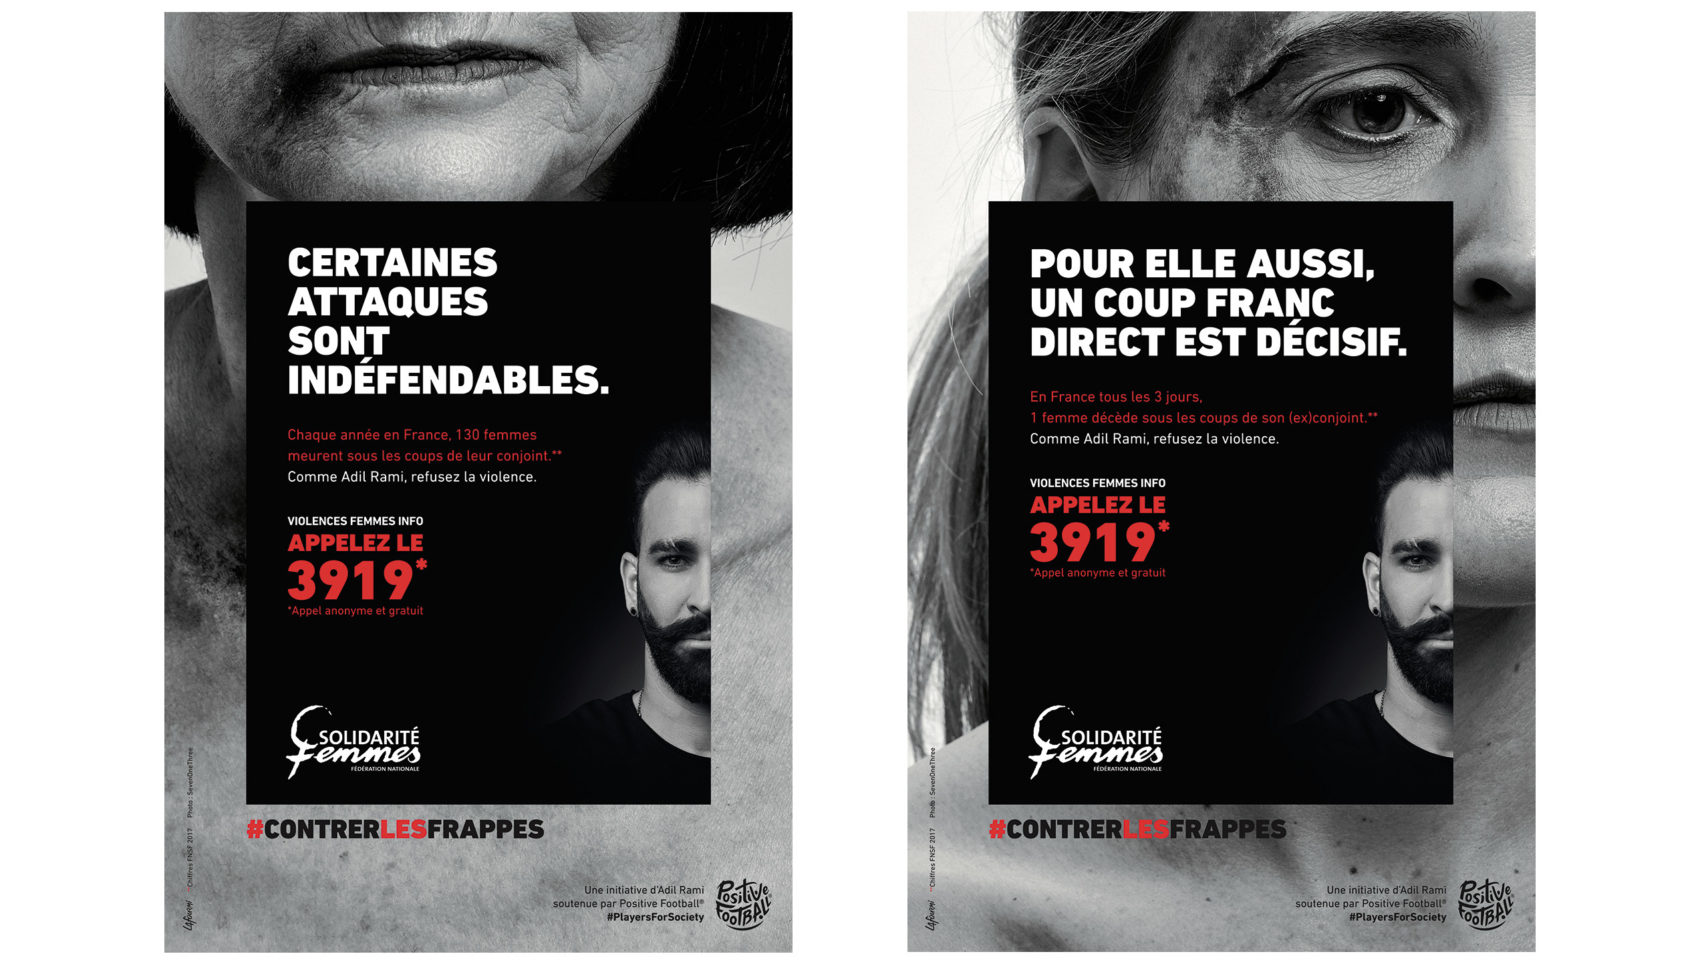 Projet_Positive_Football_Campagne_campaign_Violences_Adil_Rami_#CONTRERLESFRAPPES_2